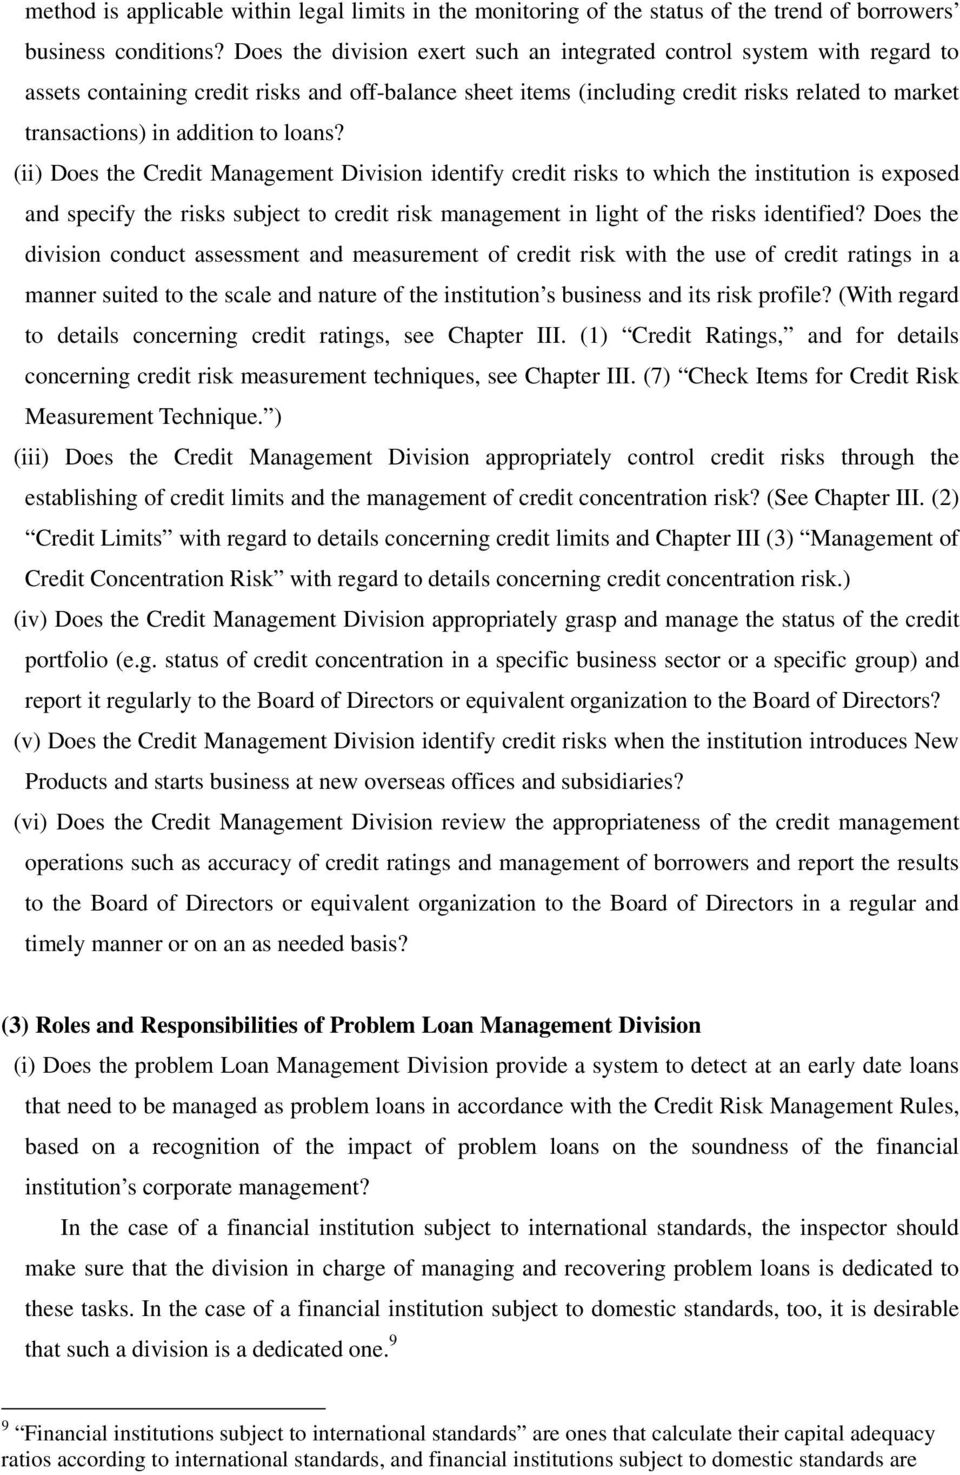 to loans? (ii) Does the Credit Management Division identify credit risks to which the institution is exposed and specify the risks subject to credit risk management in light of the risks identified?